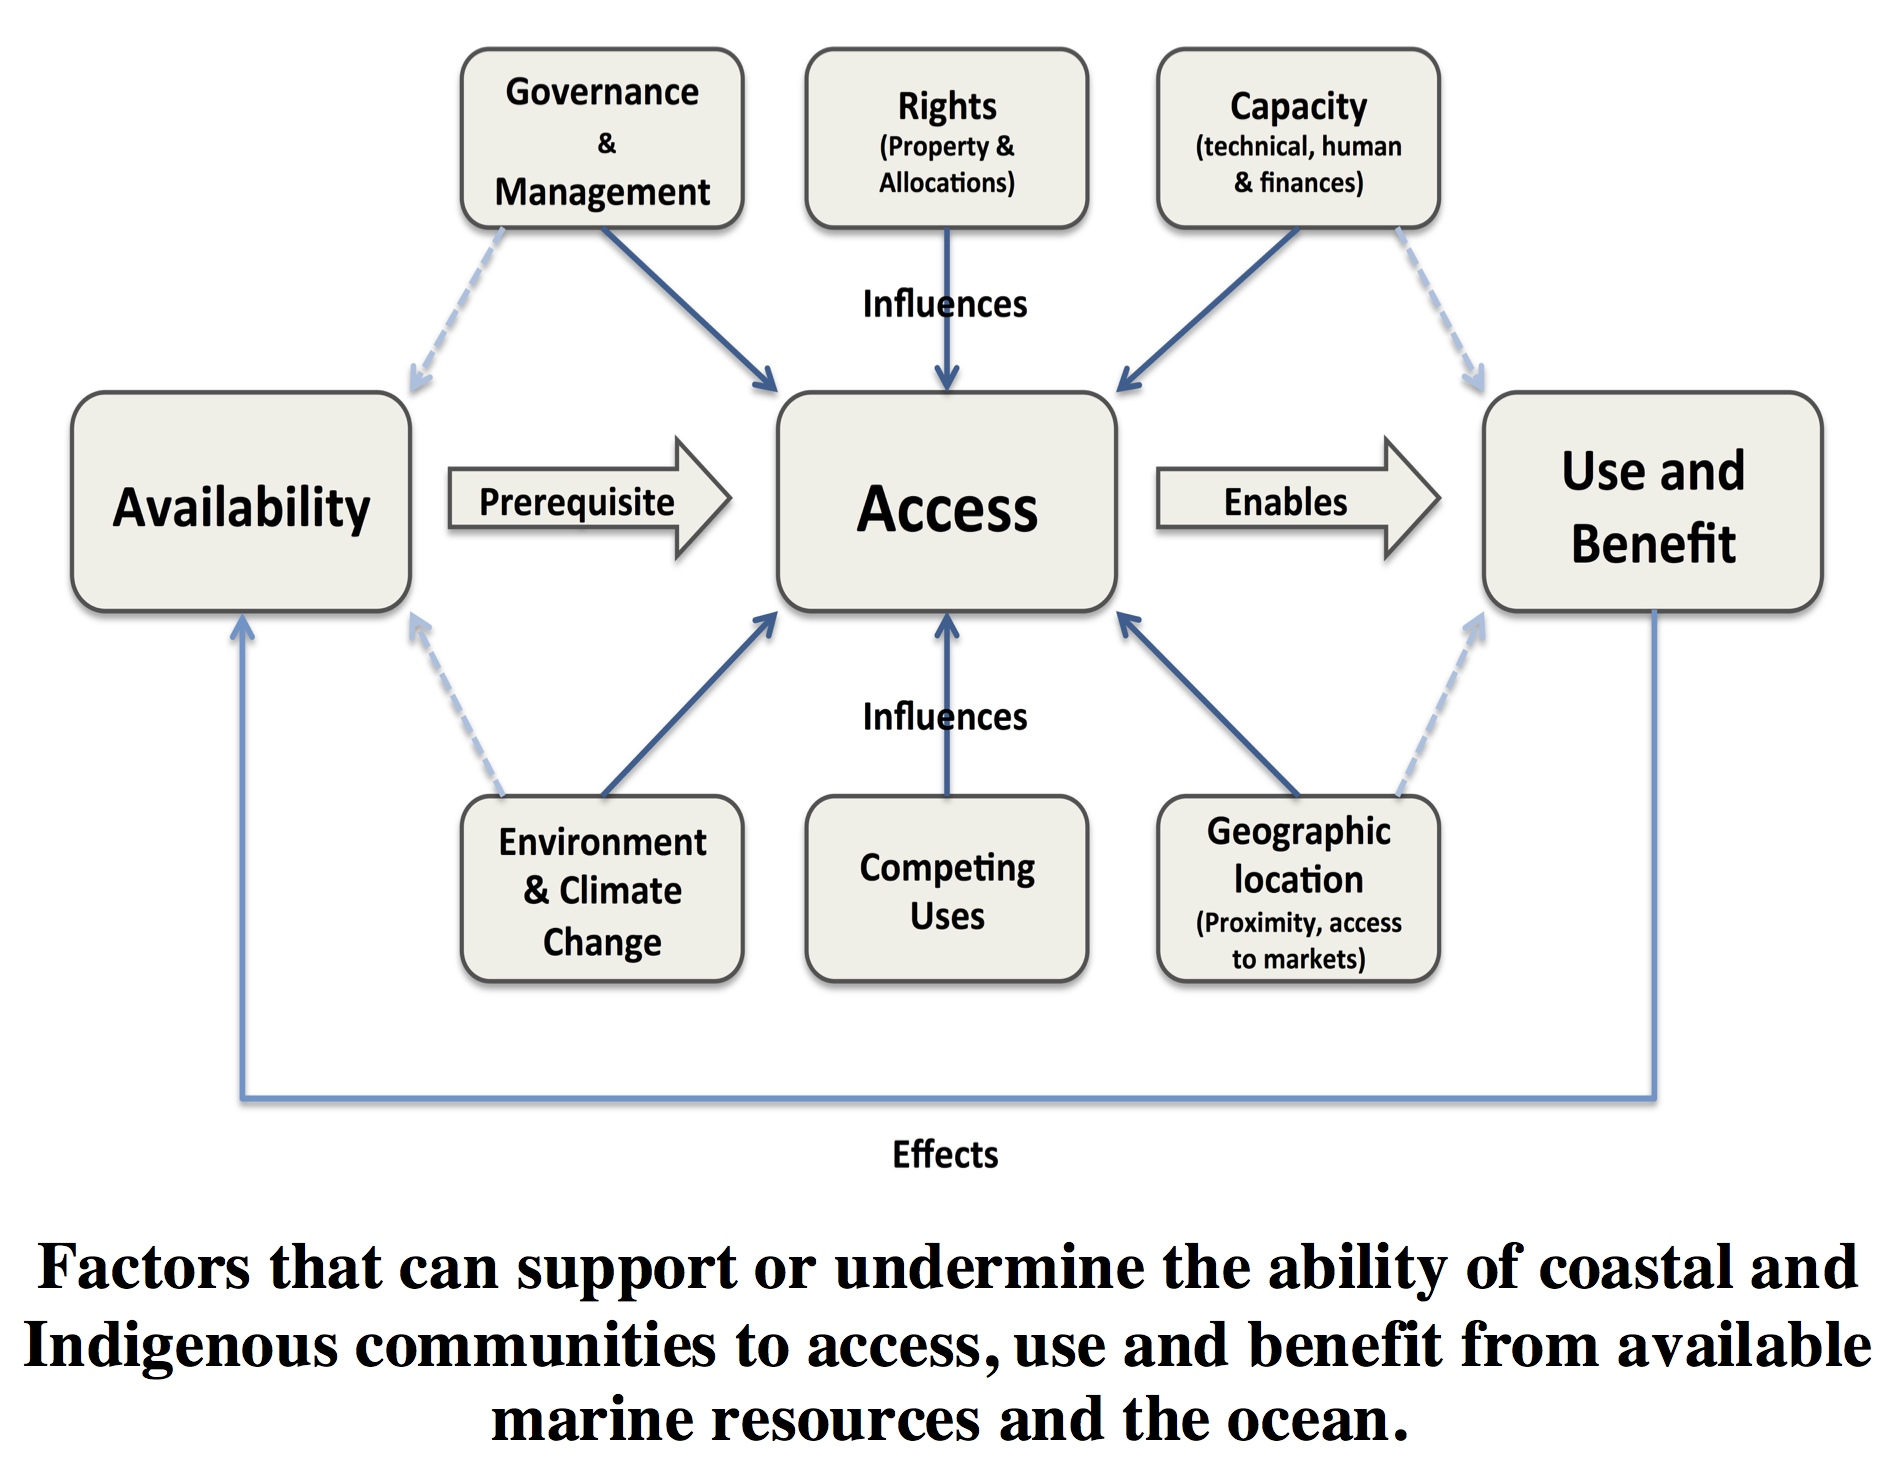 Factors that can support or undermine access to marine resources and the ocean - Bennett et al, Marine Policy 2017